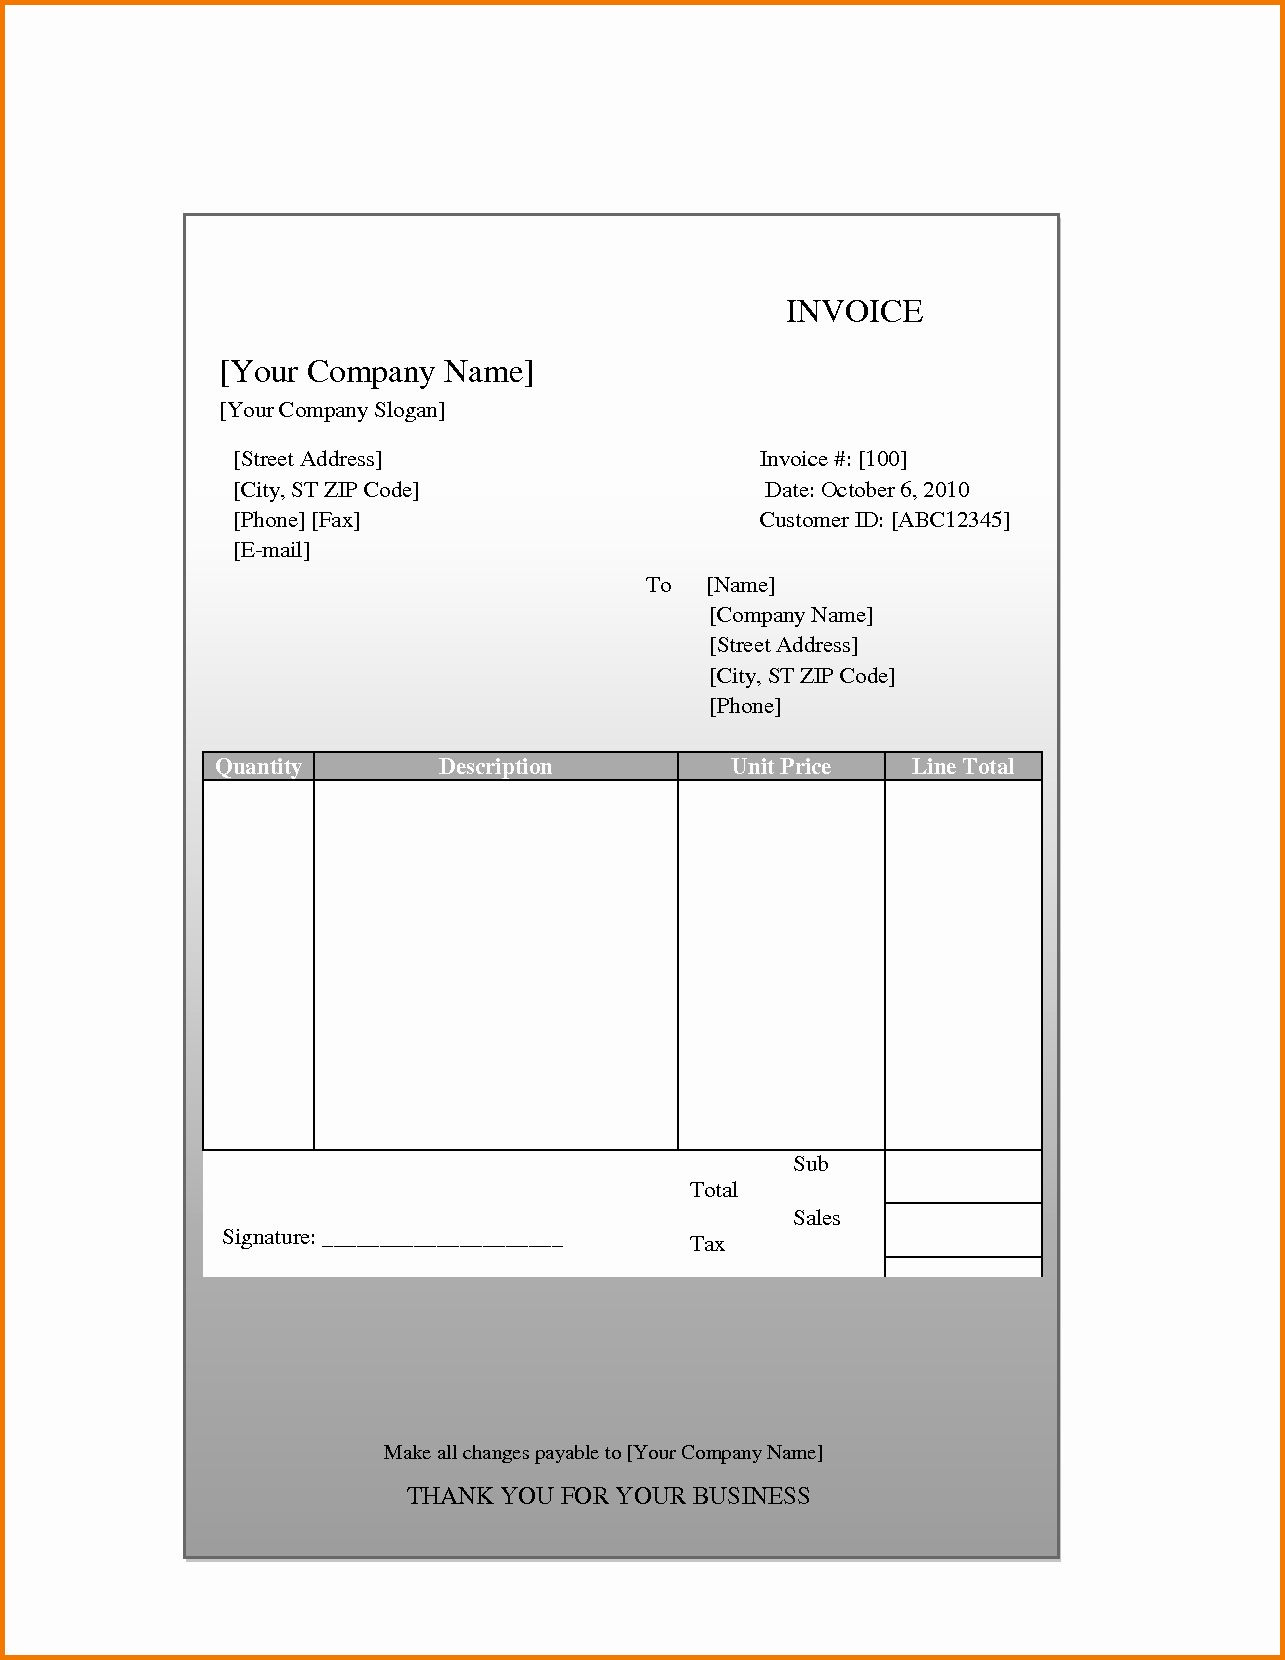 Quickbooks Check Template Word Awesome Quickbooks Invoice Templates Spreadsheet Templates for